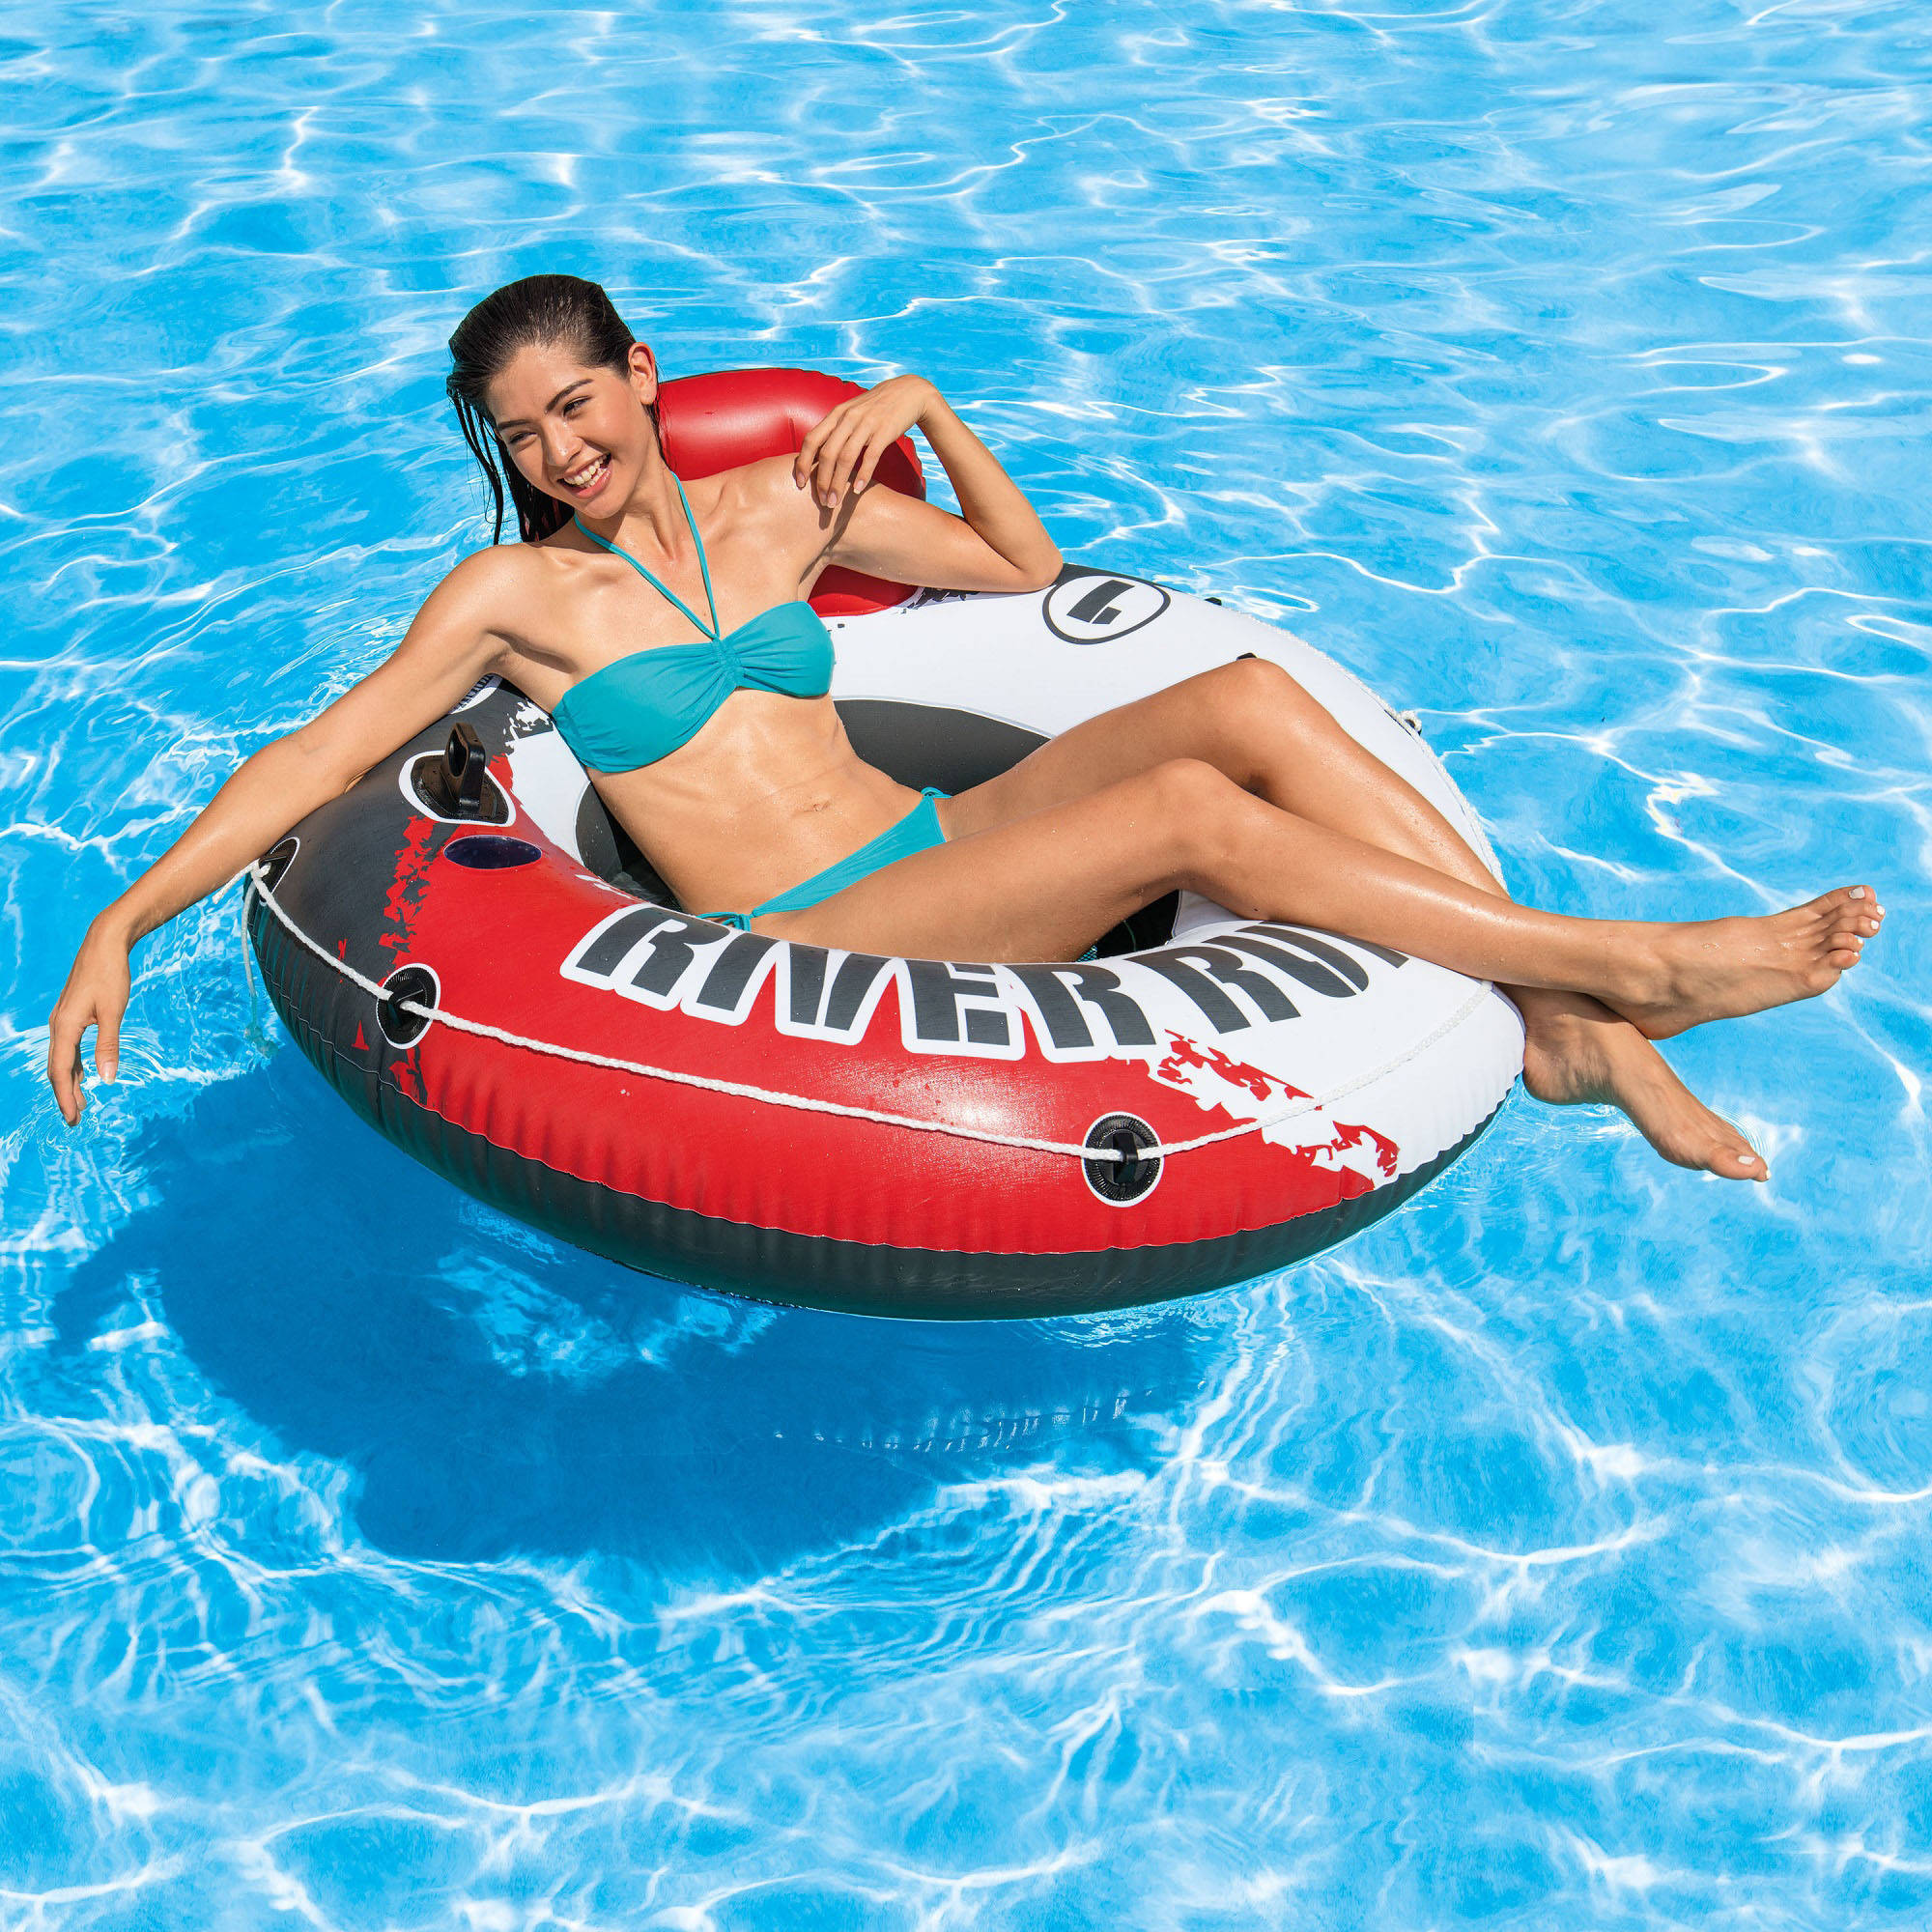 Intex Inflatable Red River Run I Pool Tube, 53